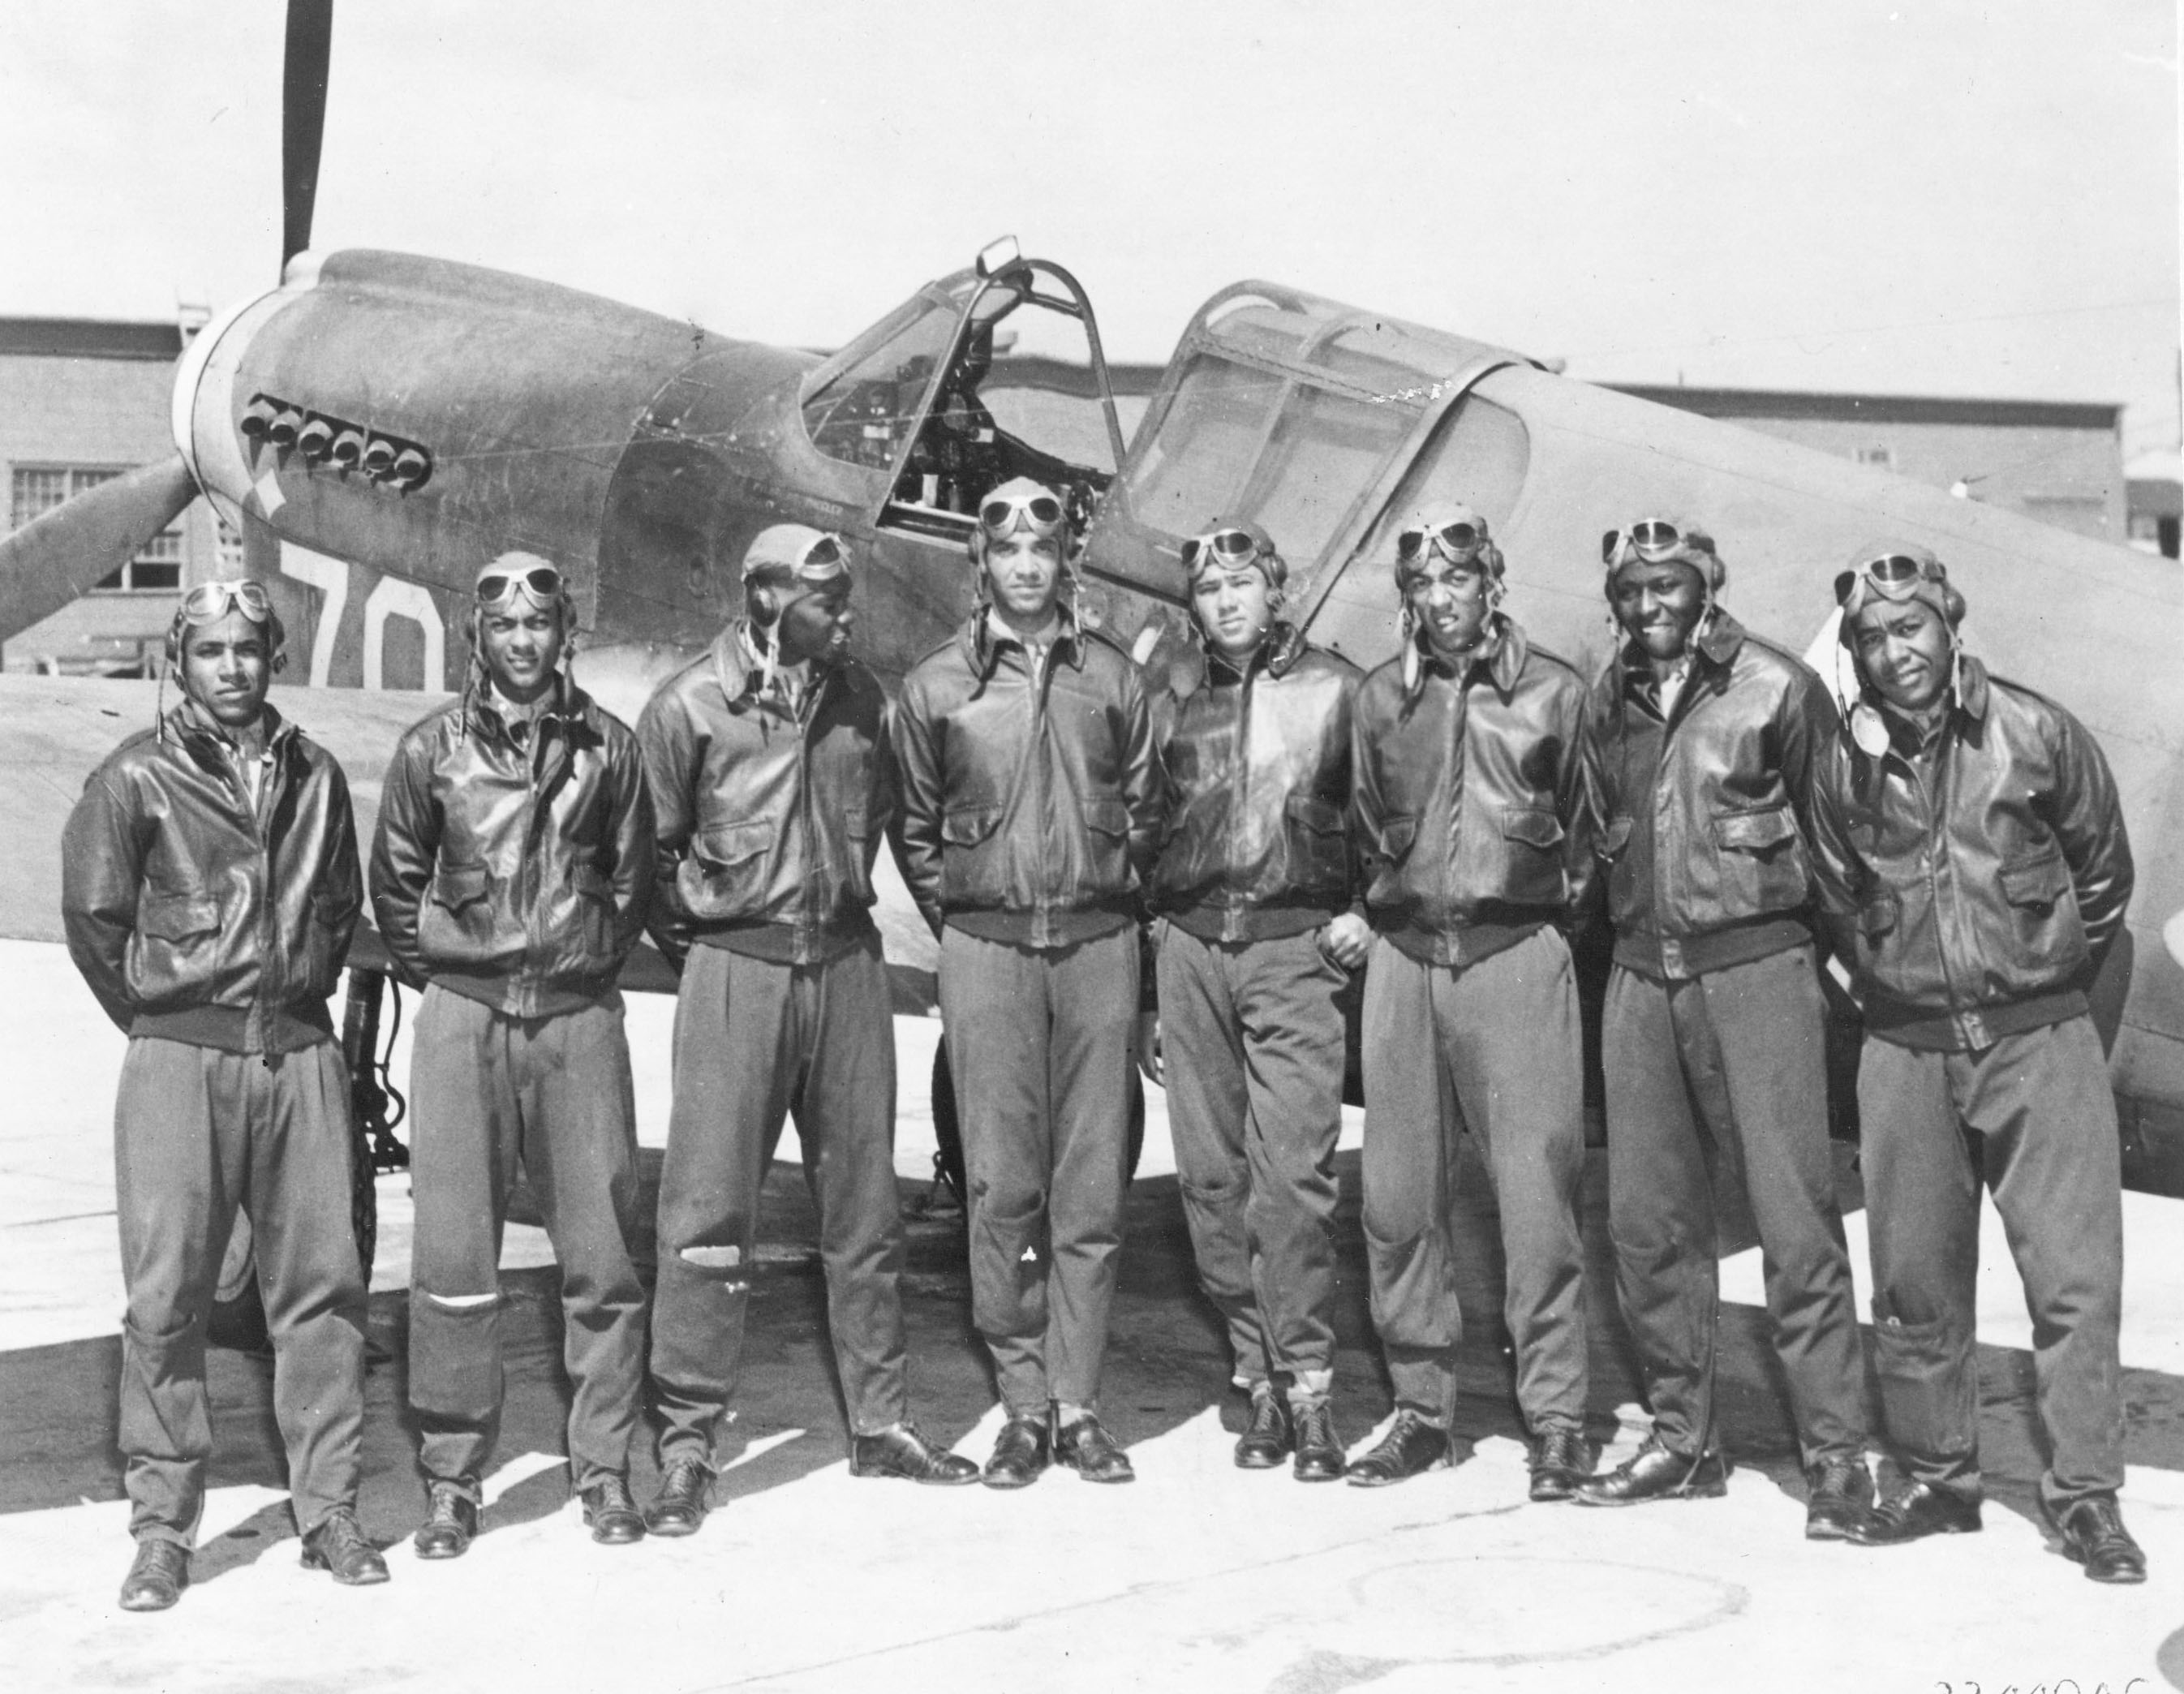 The Tuskegee Airmen P-51 Mustang